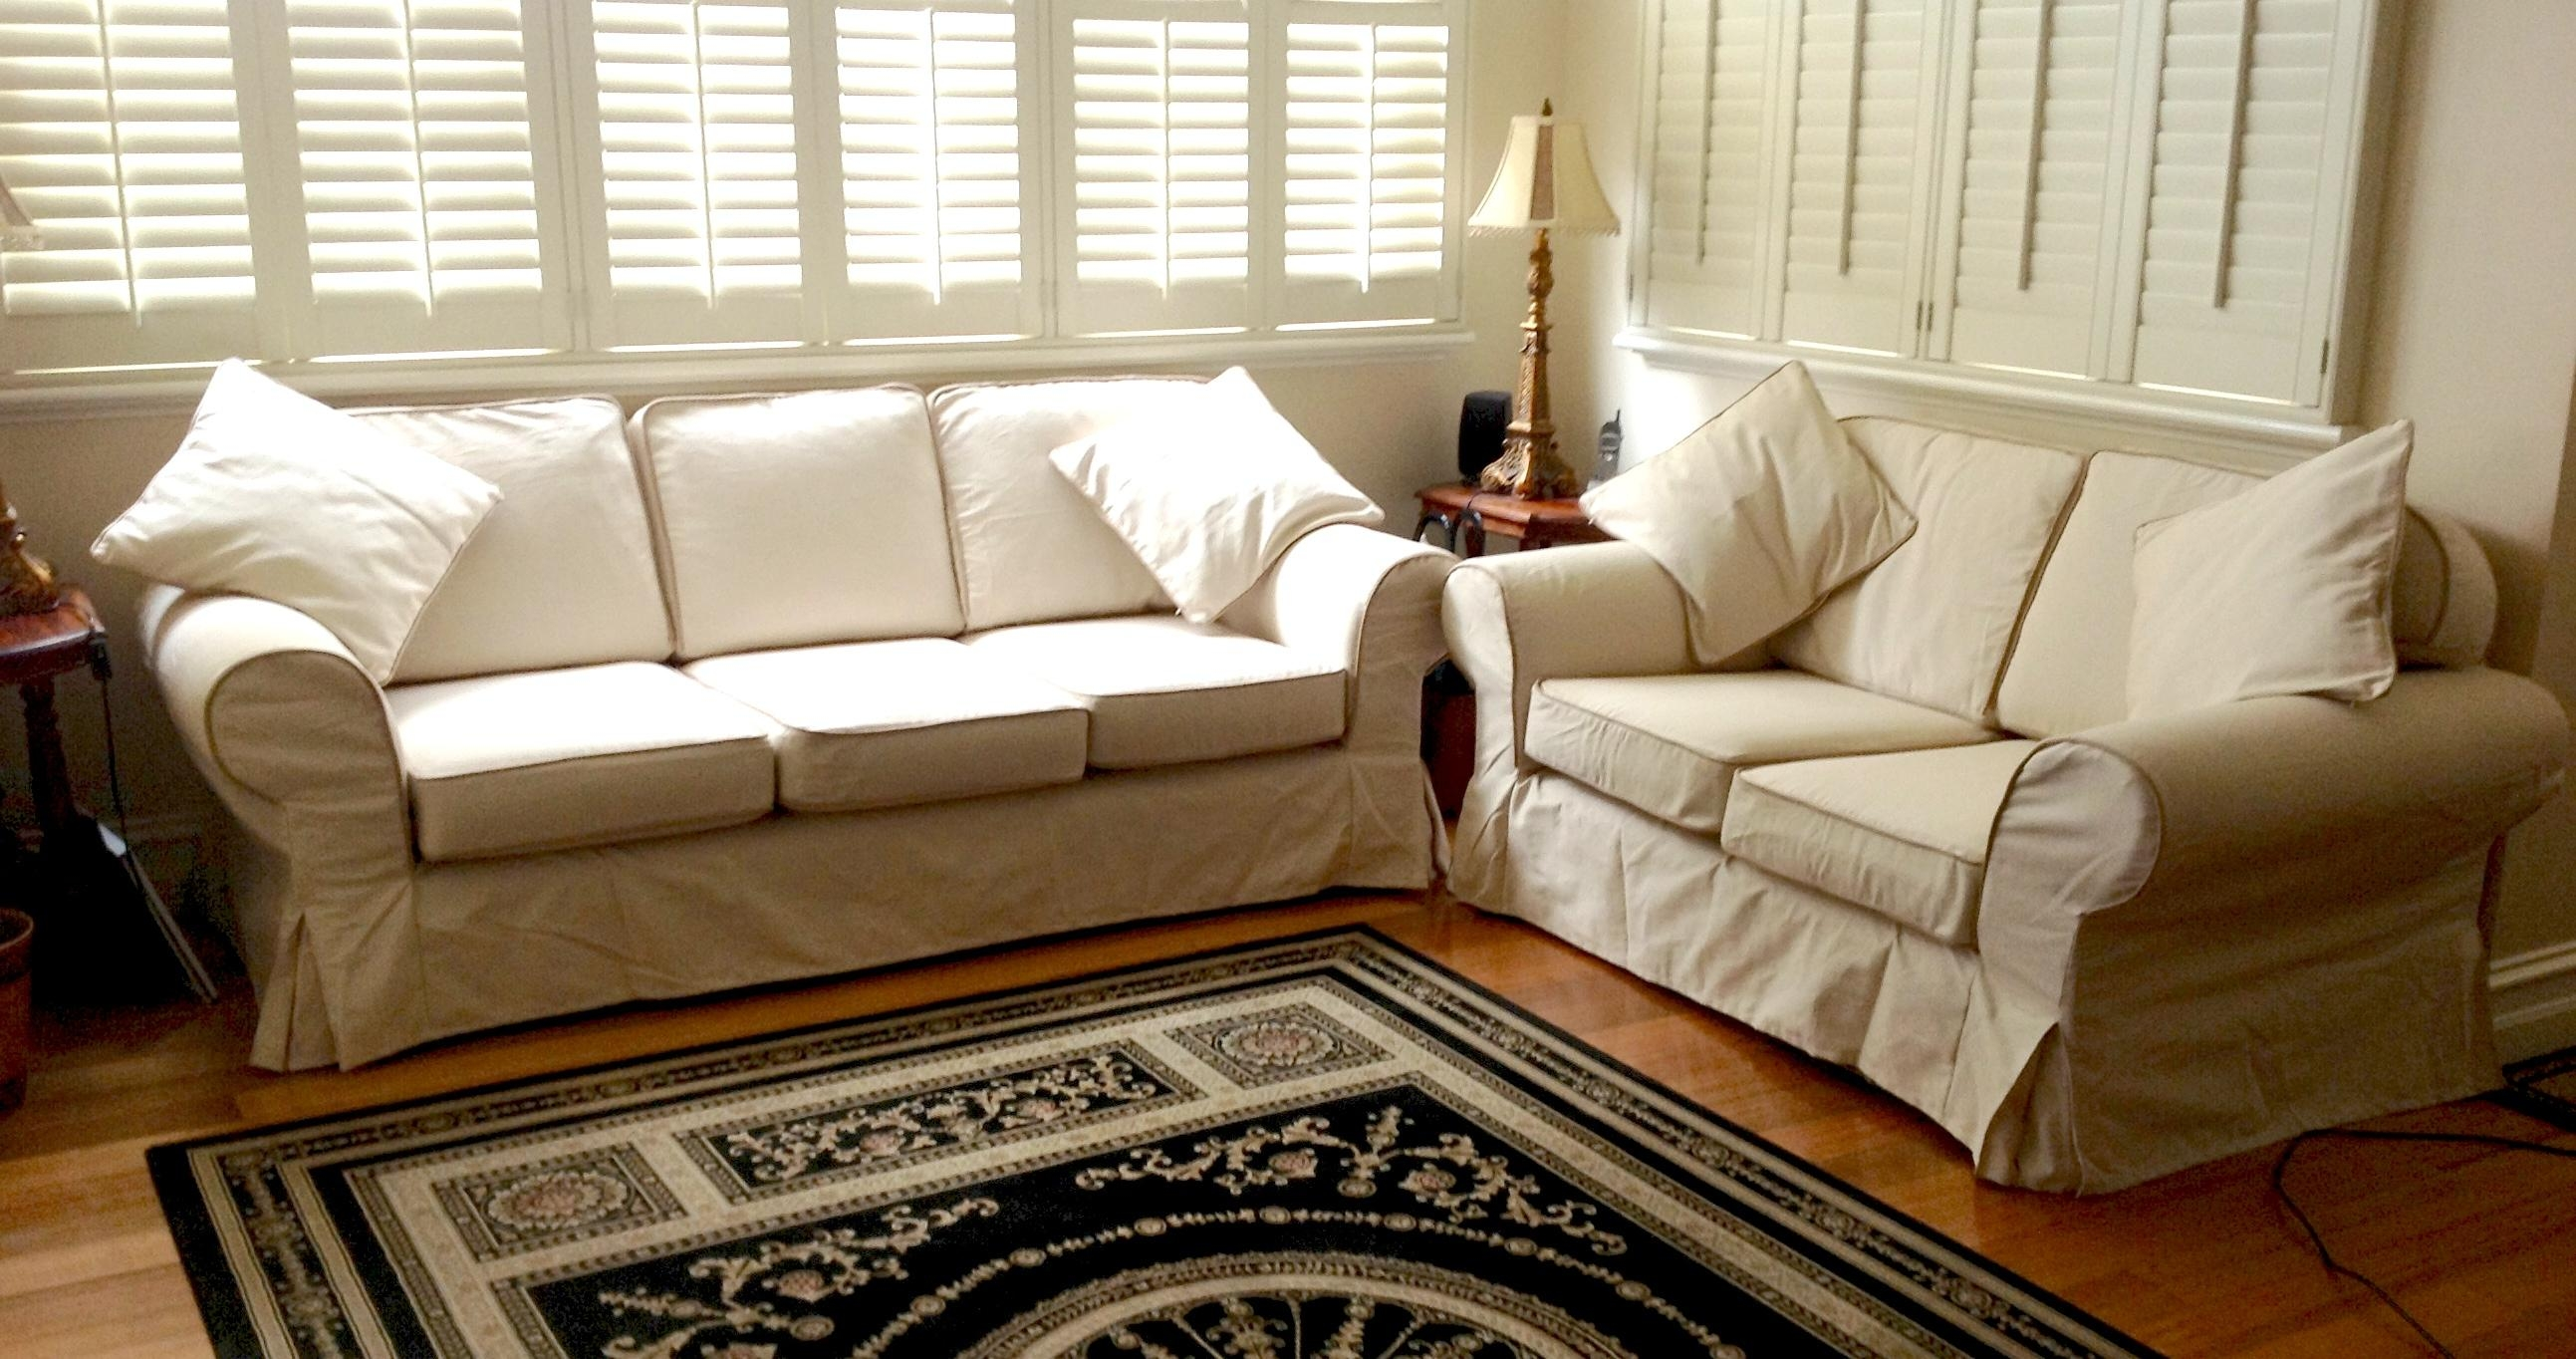 Custom Slipcovers And Couch Cover For Any Sofa Online Regarding Canvas Sofa Slipcovers (View 10 of 20)